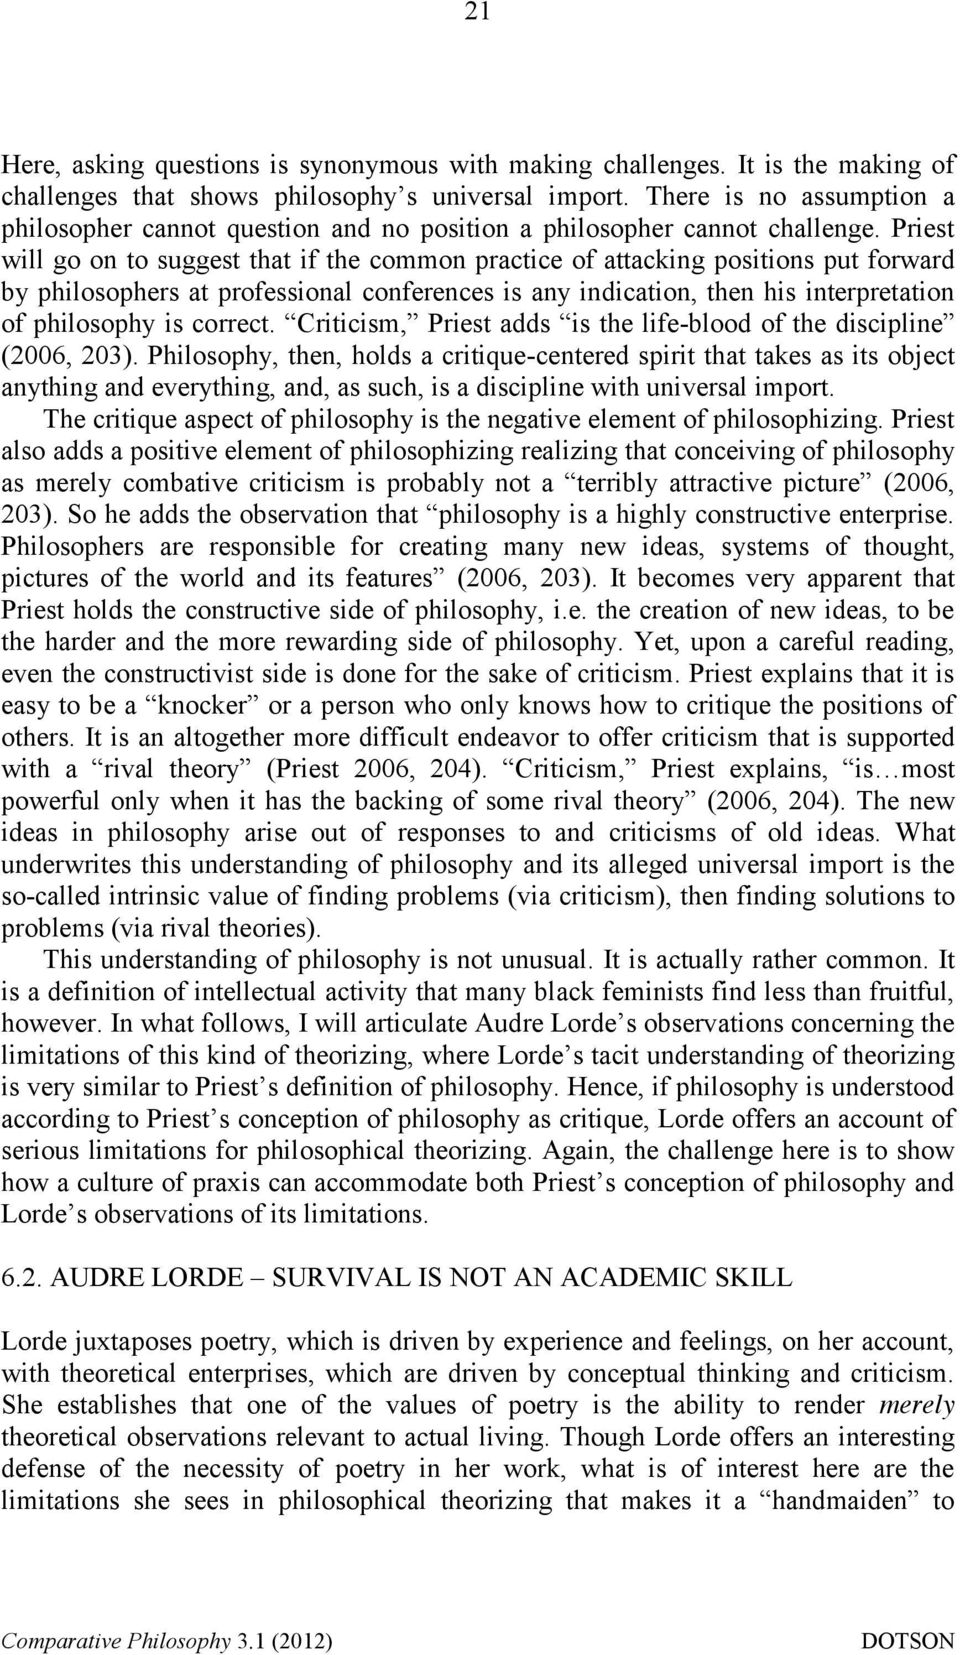 Priest will go on to suggest that if the common practice of attacking positions put forward by philosophers at professional conferences is any indication, then his interpretation of philosophy is